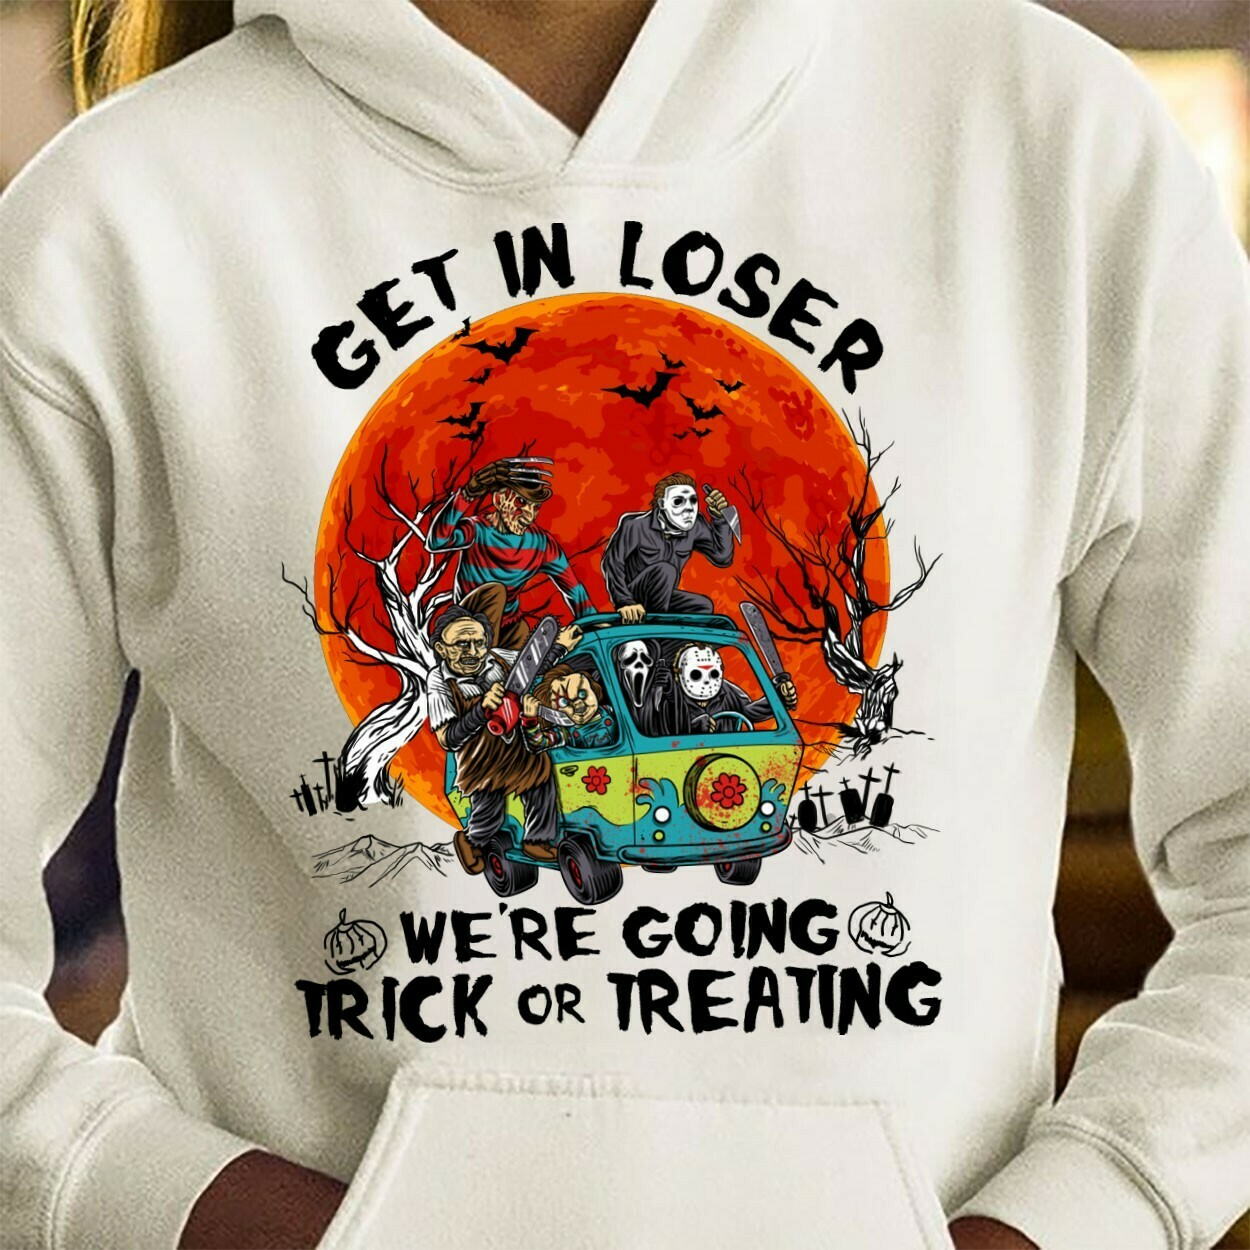 Get In Loser We're Going Trick Or Treating Pennywise Squad Hippie Van Car Mashup Halloween Horror Movie T Shirt Long Sleeve Sweatshirt Hoodie Jolly Family Gifts